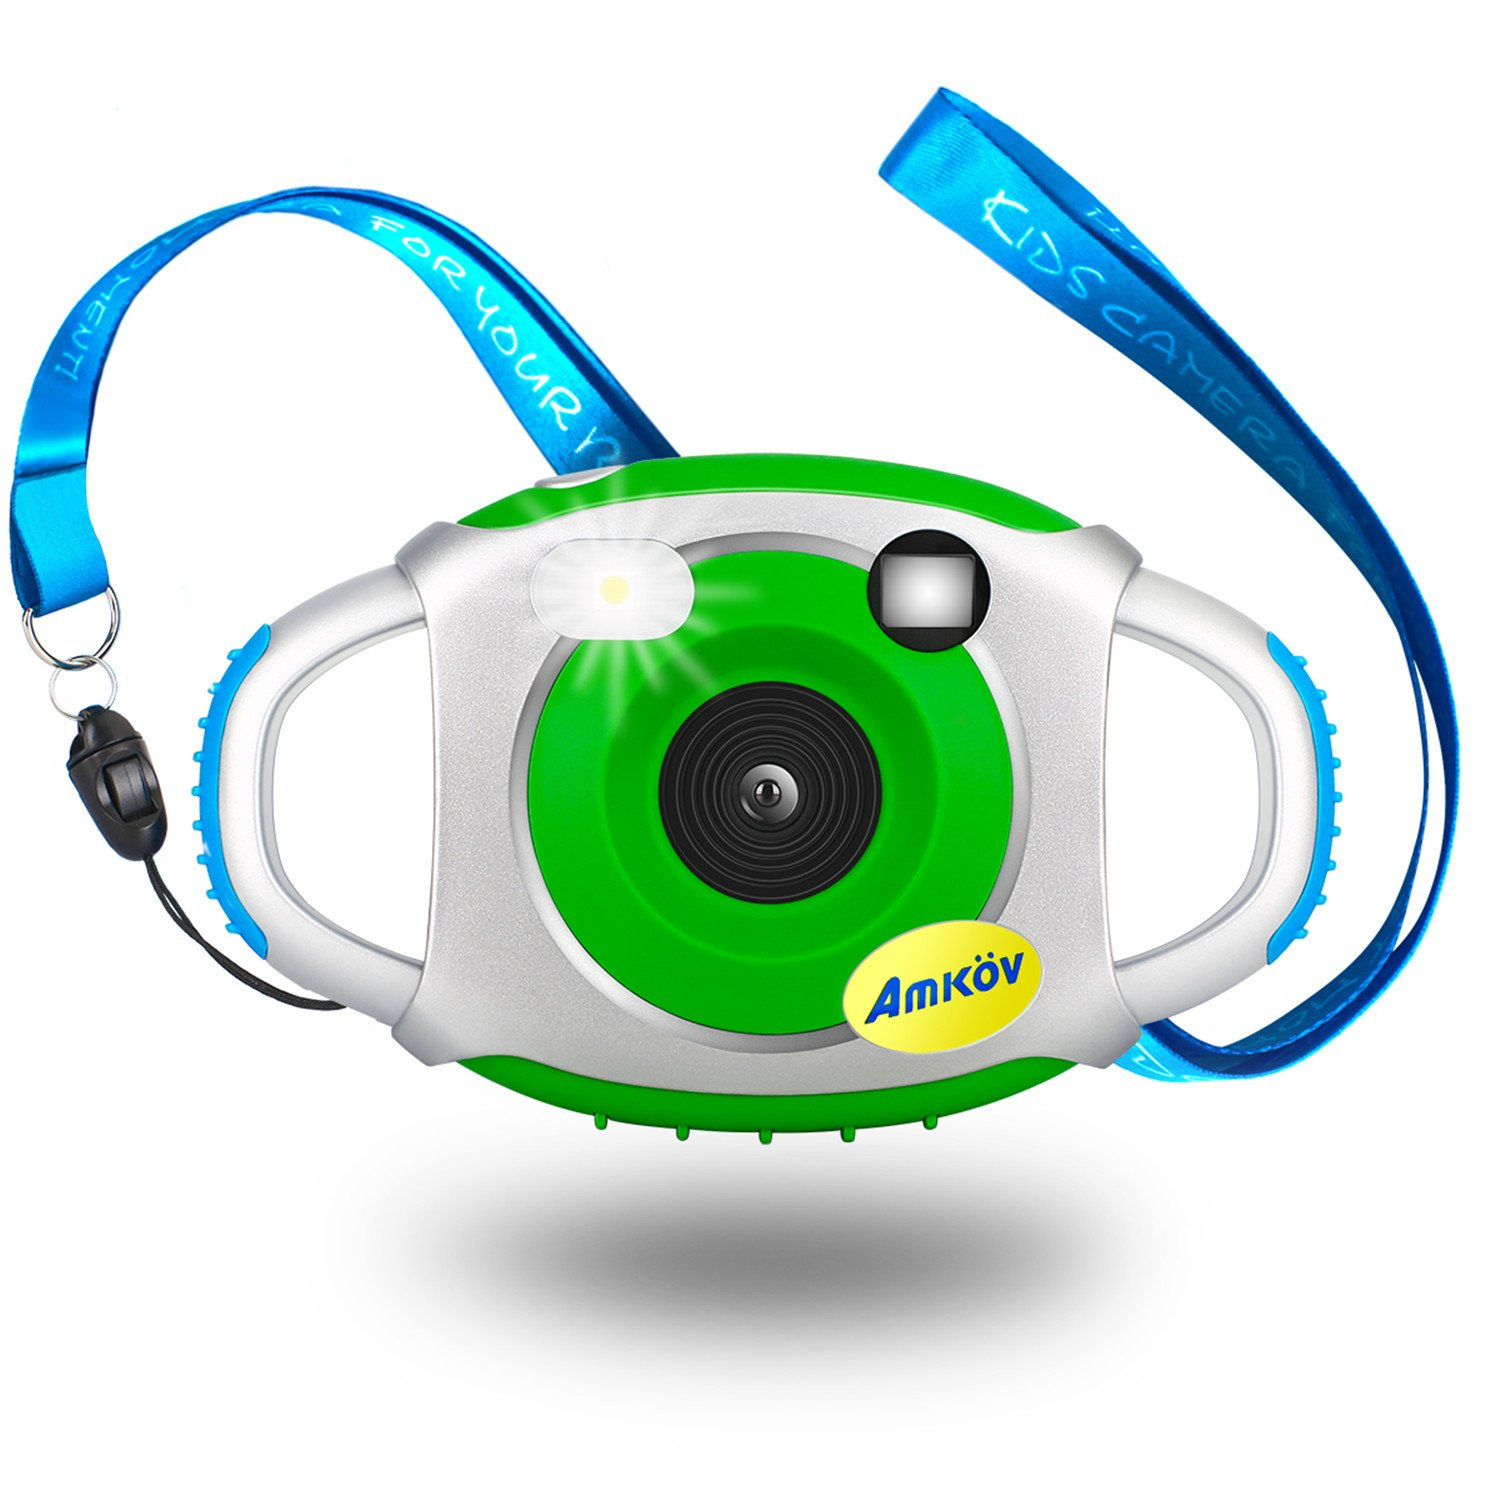 AMKOV Electronic Camera for Kids